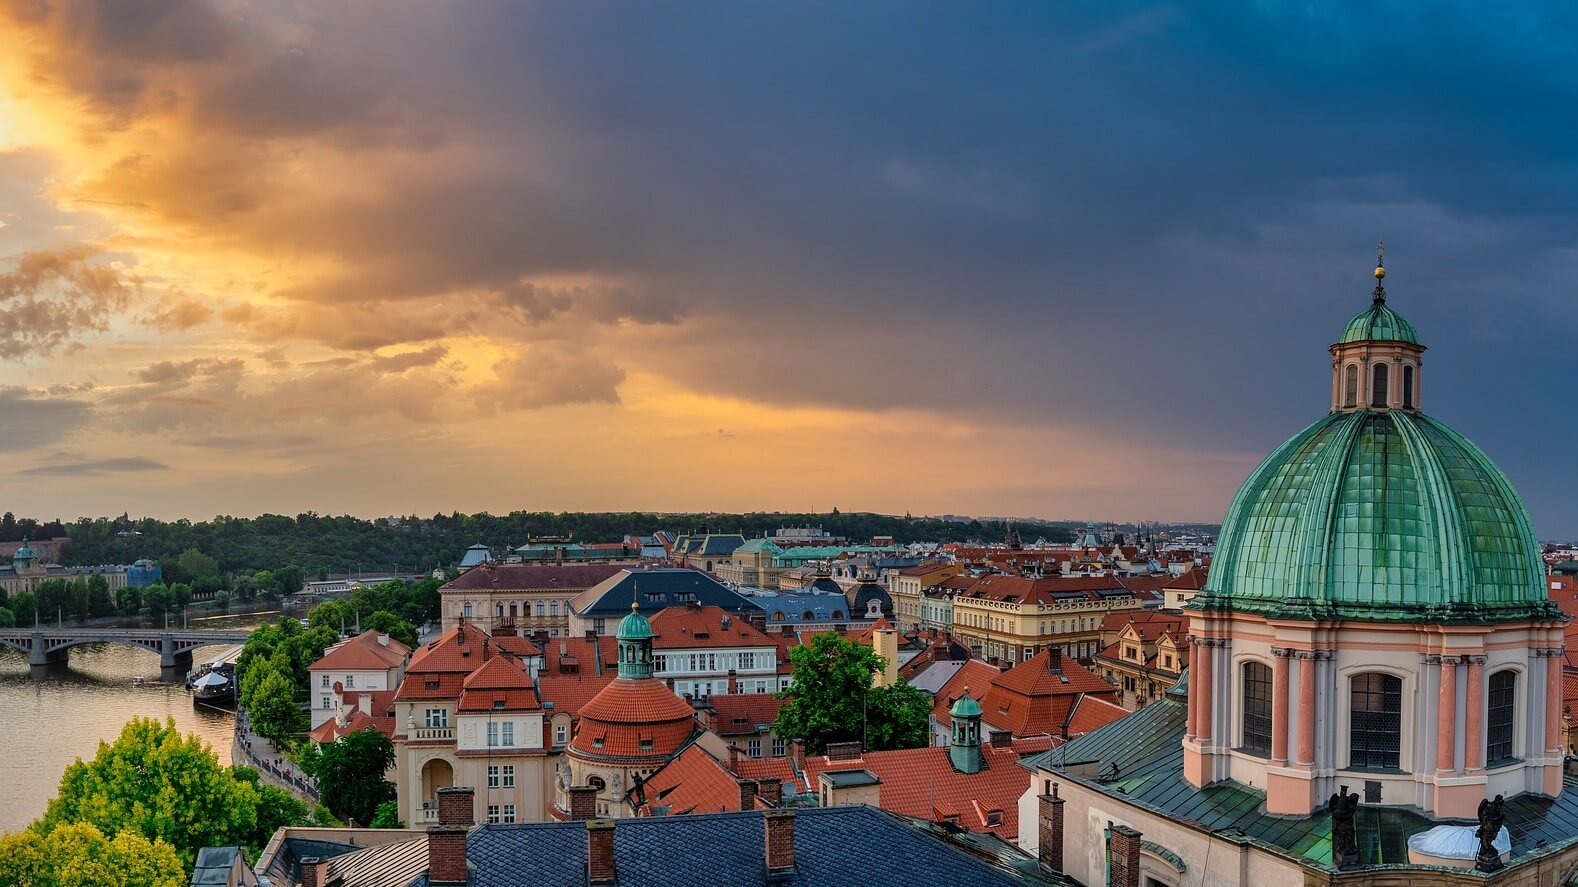 The Czech Republic is ranked as the seventh best country in the world for sustainable development